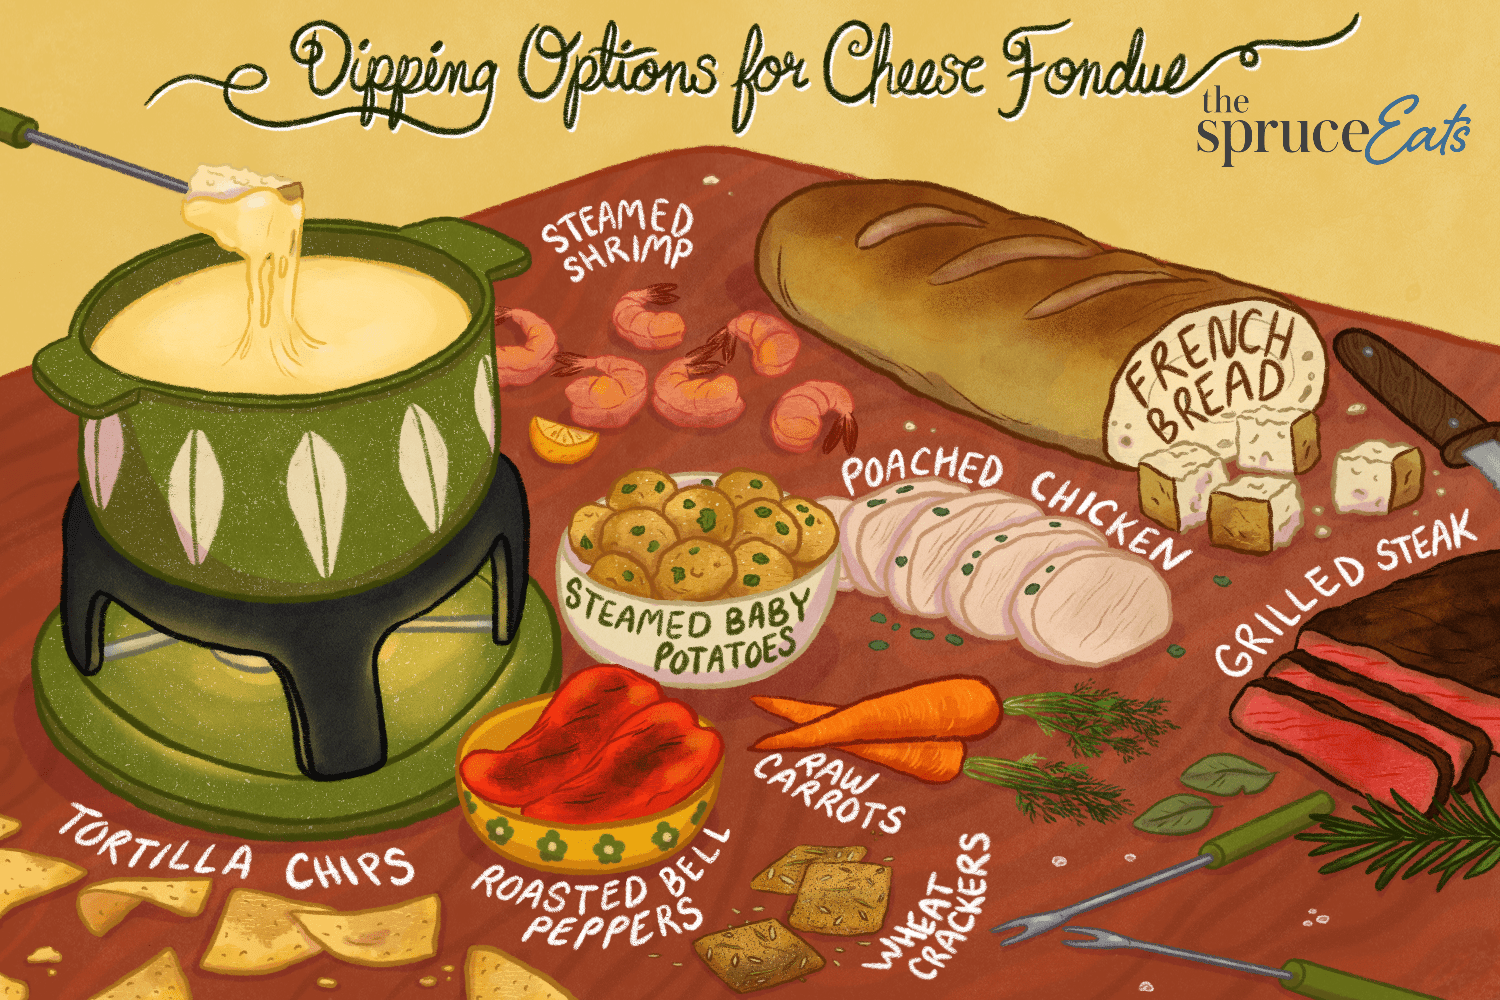 illustration showing dipping options for cheese fondue